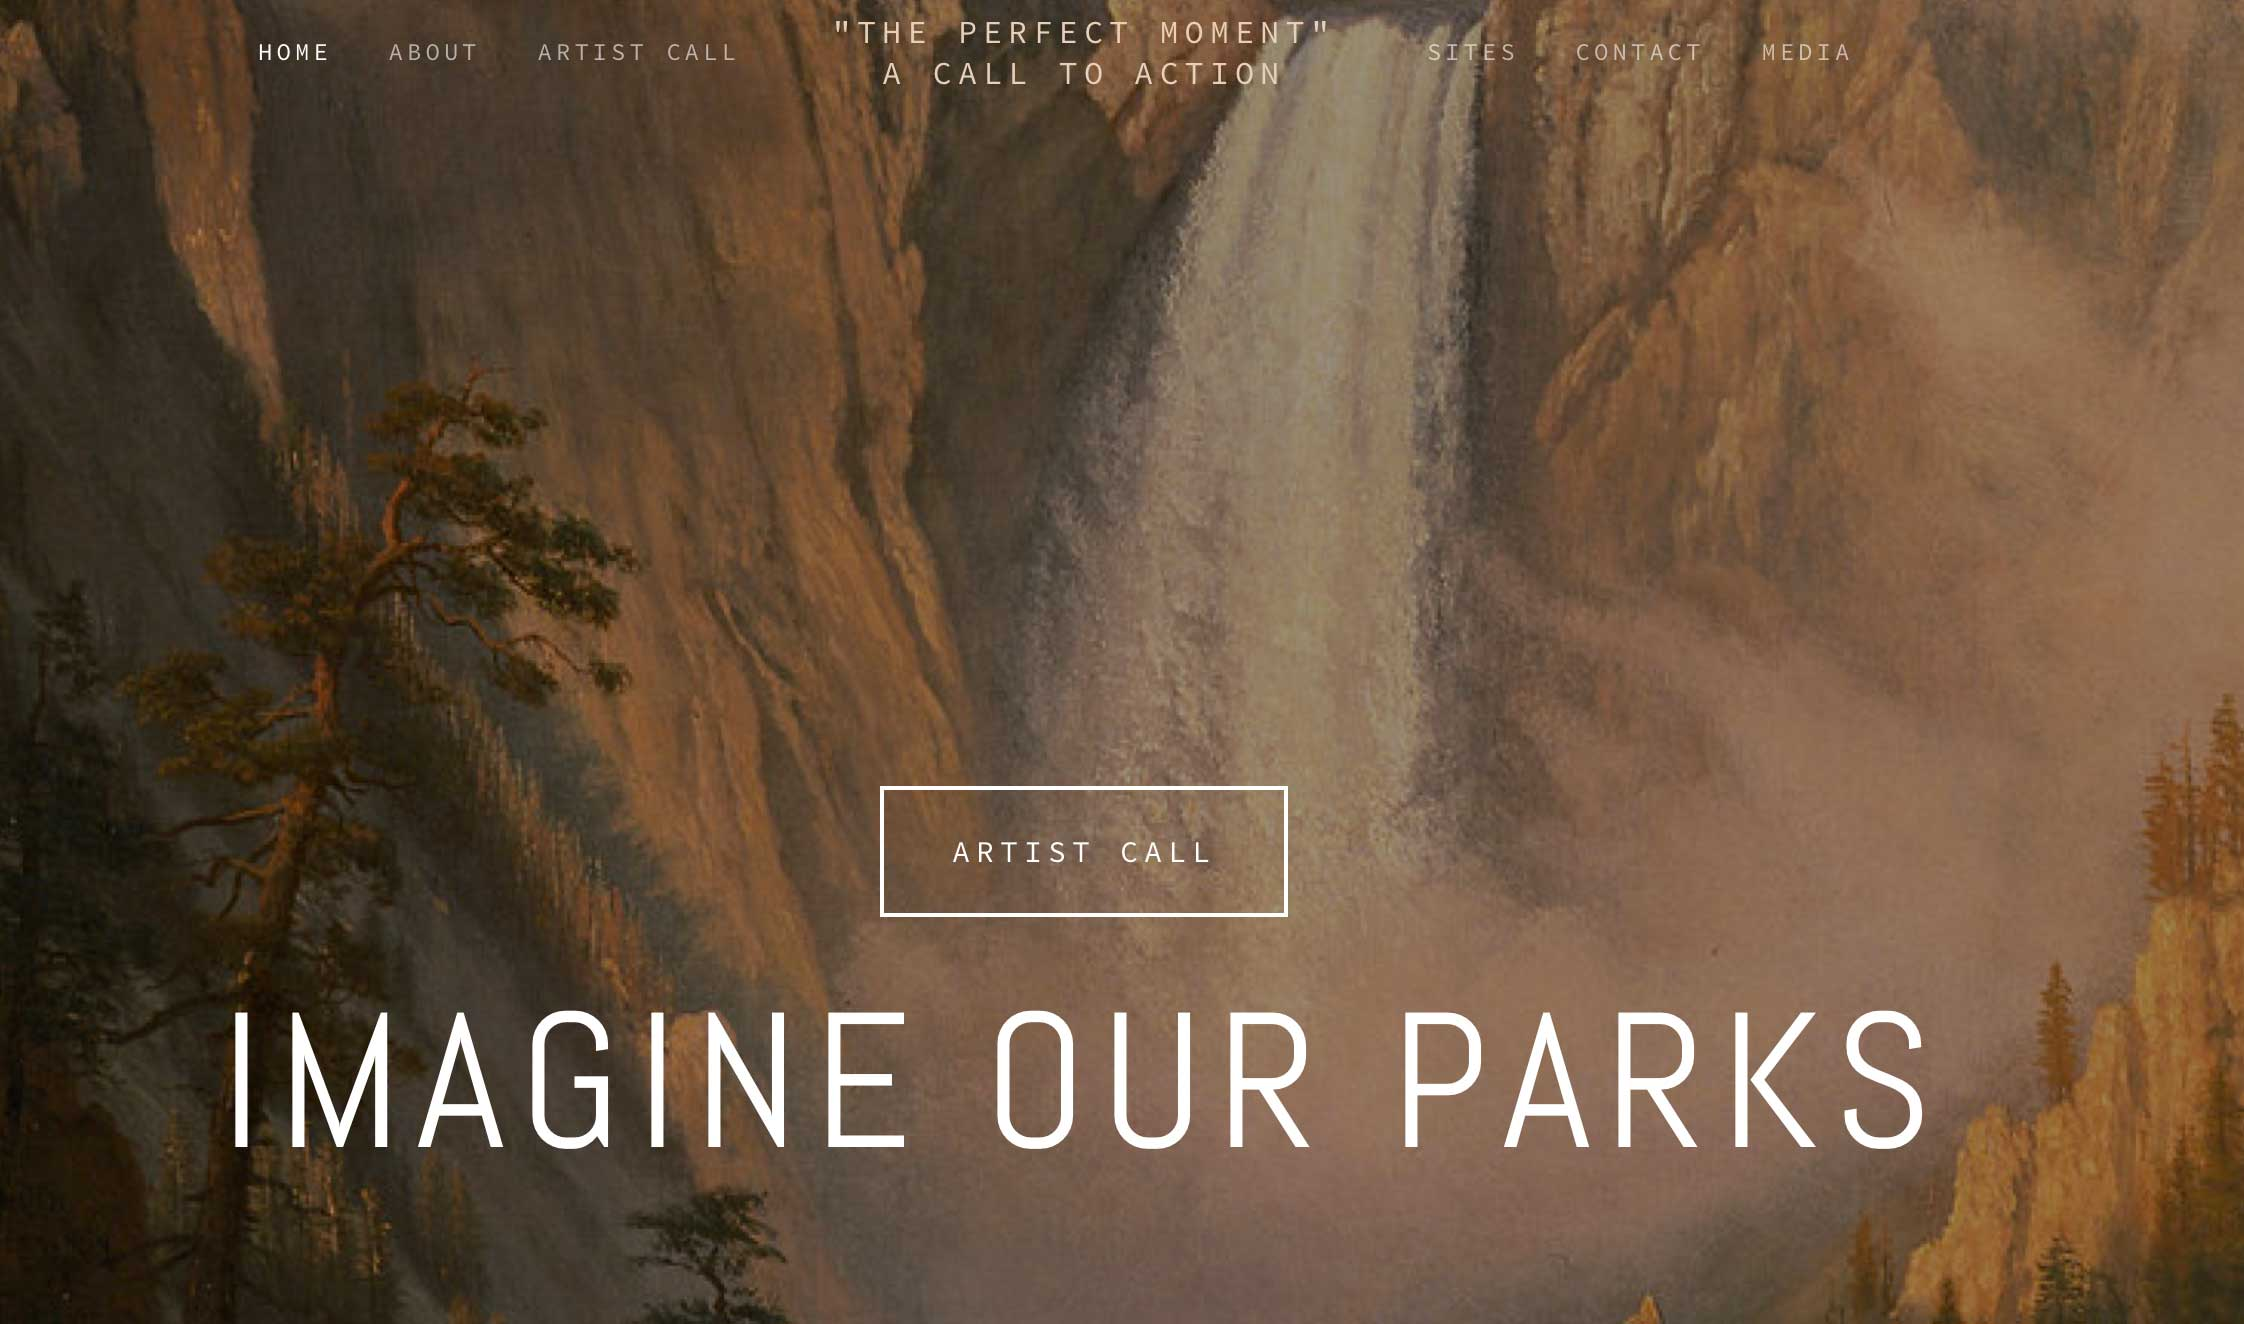 showing Imagine our Parks website, a collaborative project between Krista Cabellero and Trudi Lynn Smith